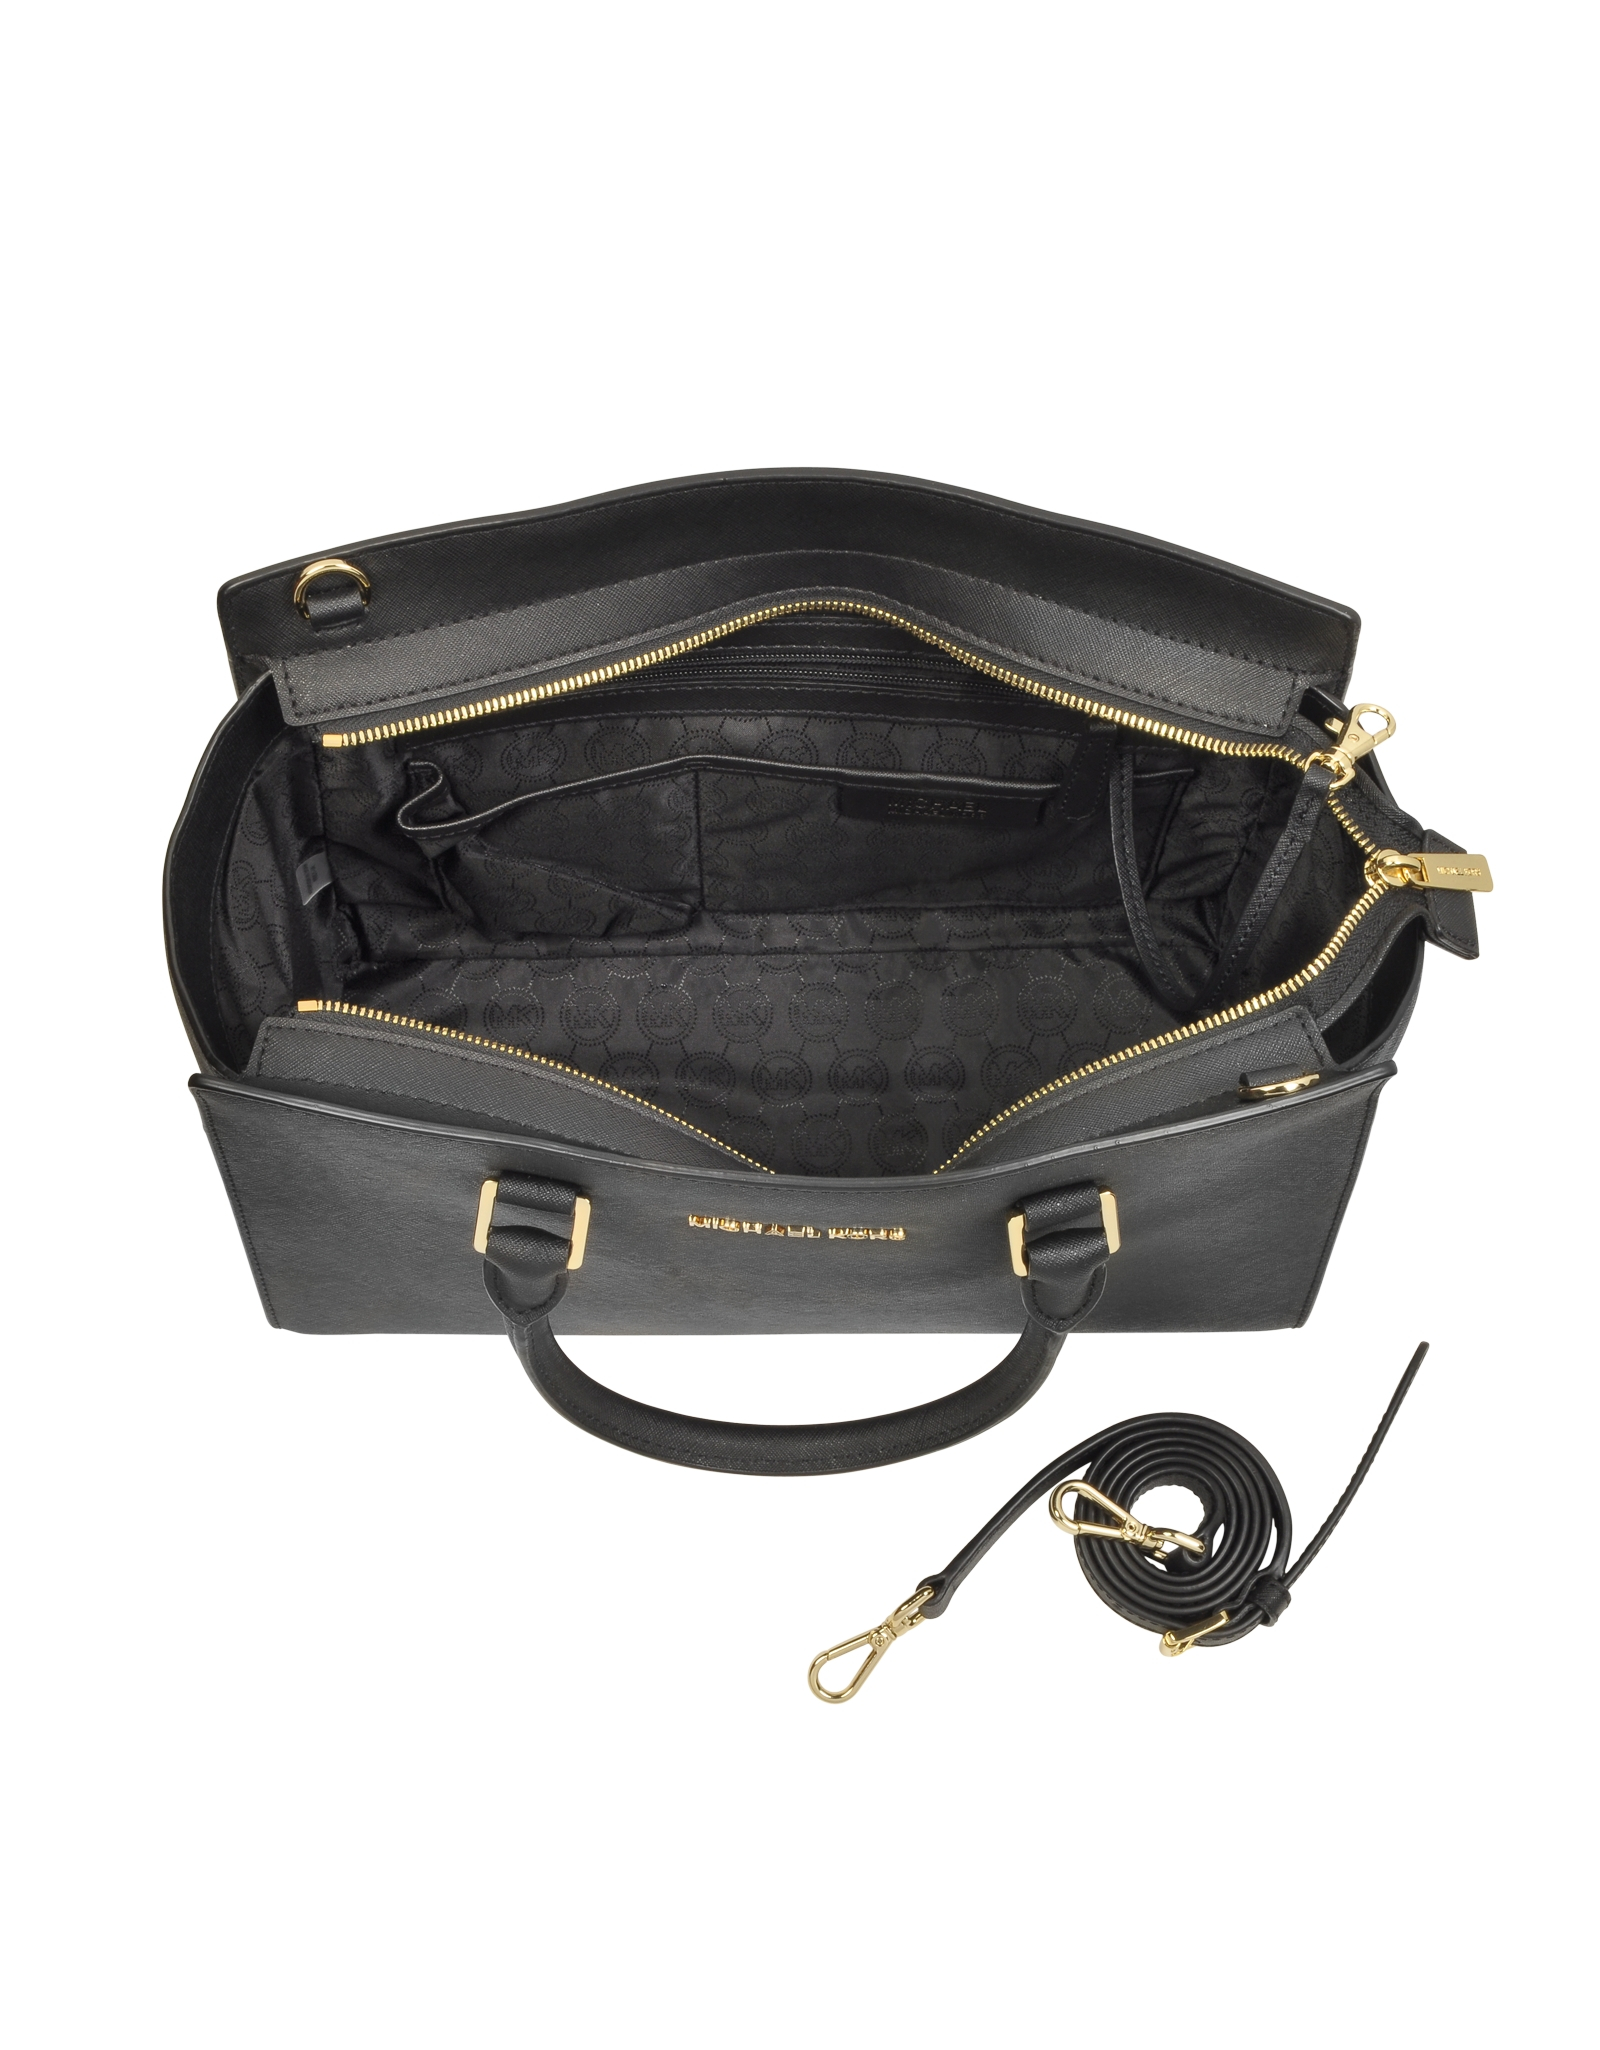 5f642a0fd1744 Lyst - Michael Kors Selma Large Top-zip Saffiano Leather Satchel in ...